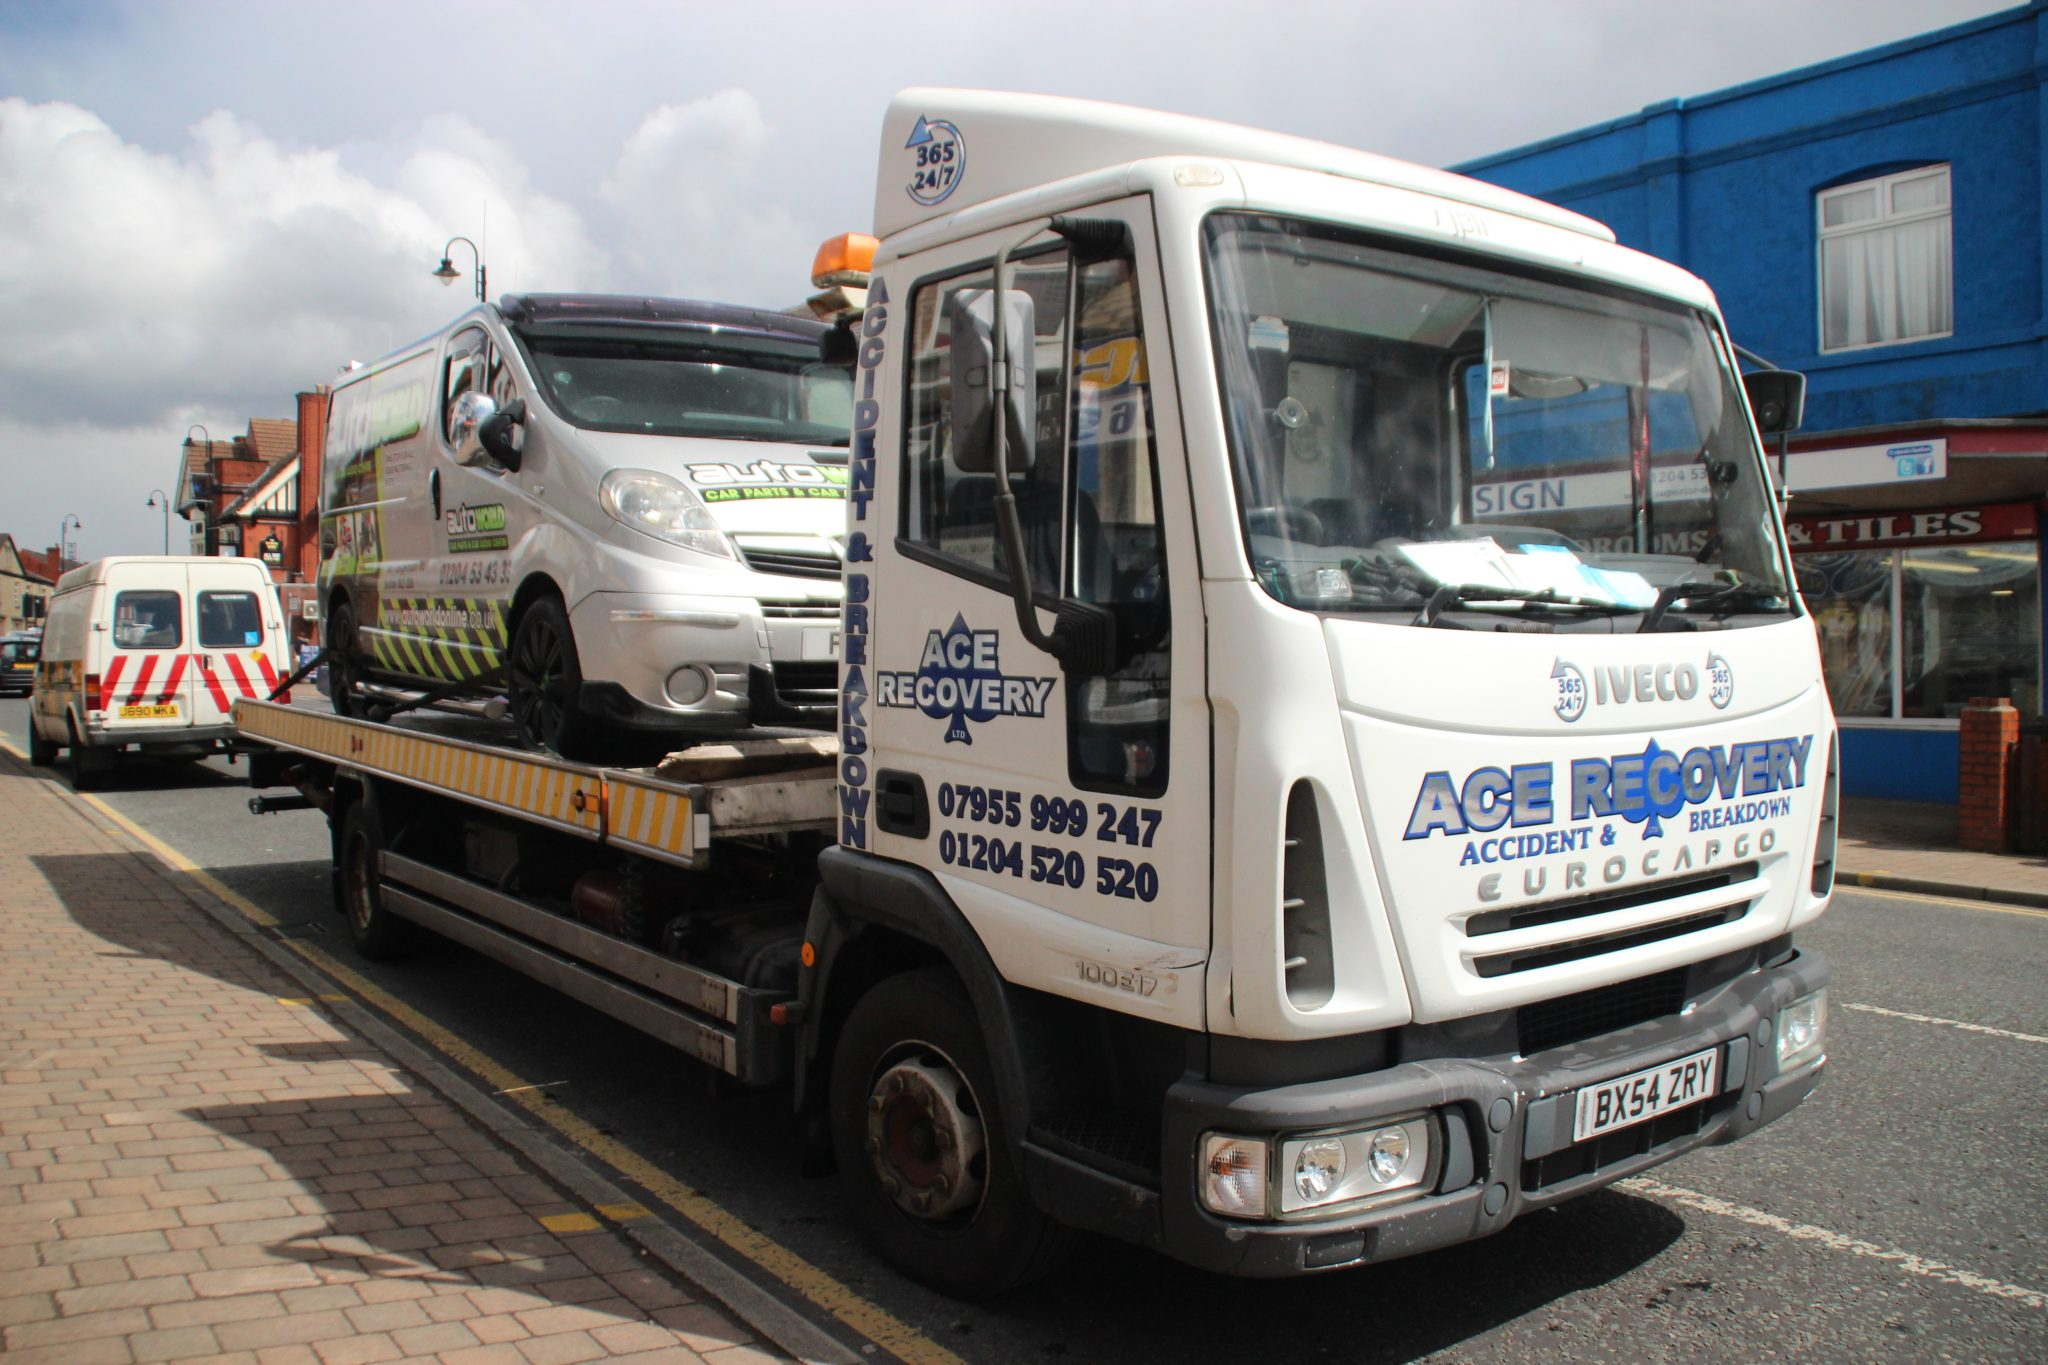 Get Twenty Four Hours Car Towing Services near Manchester with a Reliable Agency